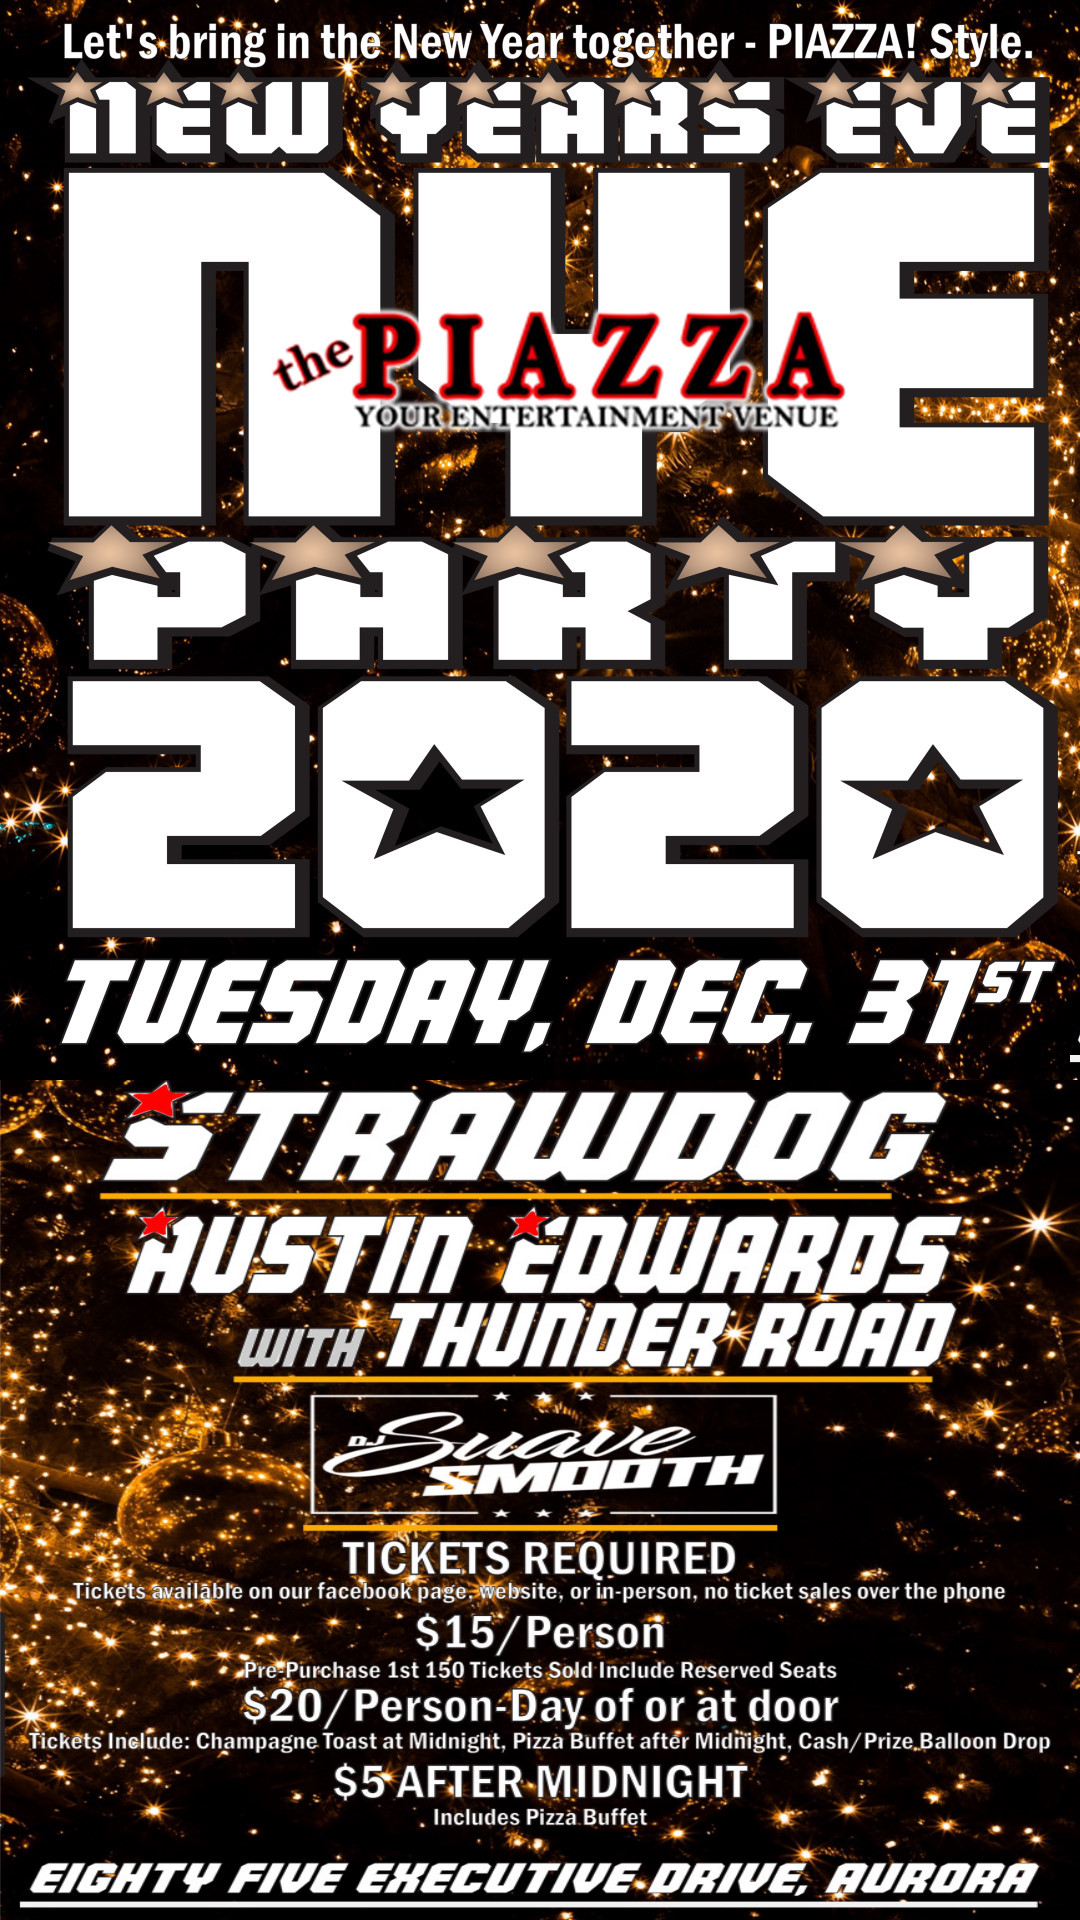 New Years Eve Party 2019-2020 @ the PIAZZA - Aurora